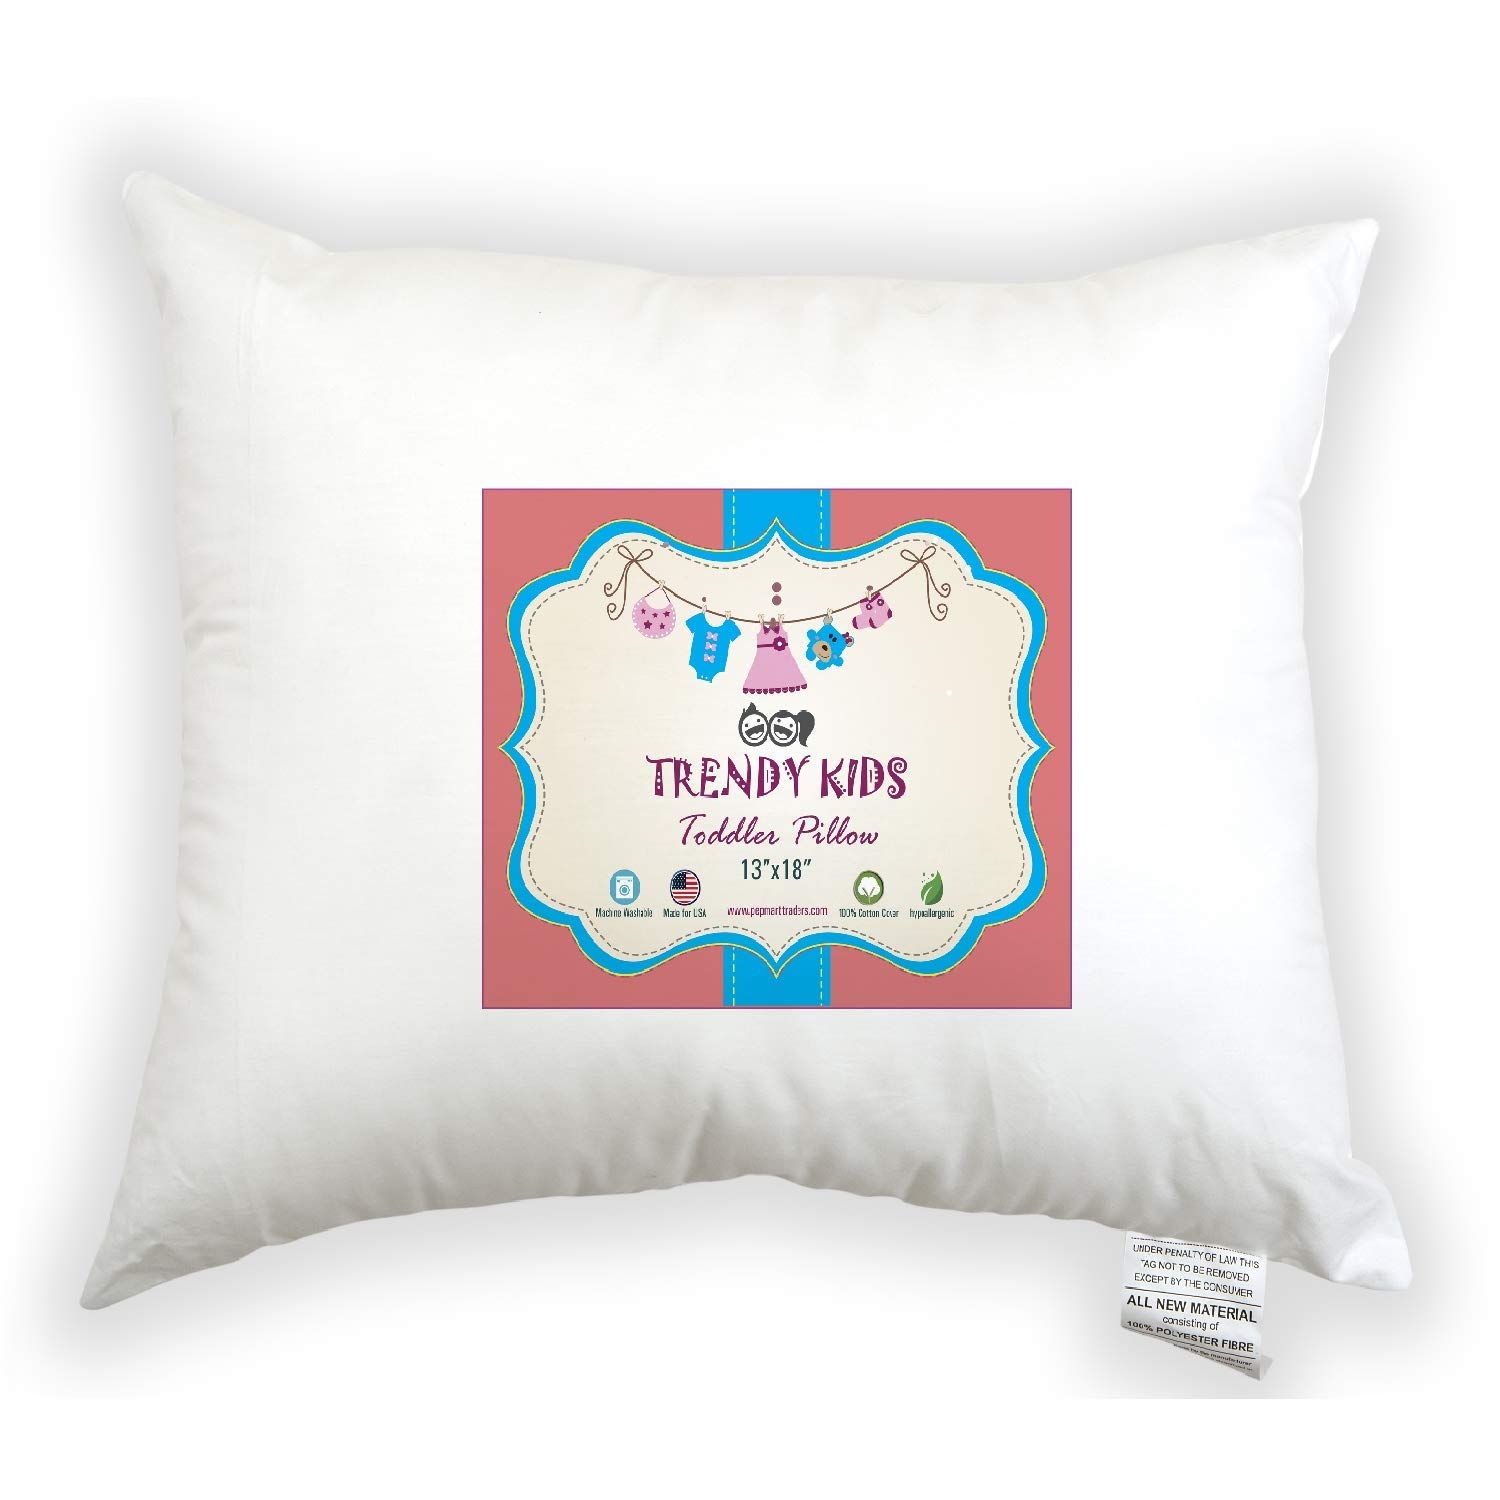 Trendy Kids Toddler Pillow 13x18 100% Cotton Baby/Toddler/Travel Pillow 300TC - No Extra Pillowcase/Sham Needed - Machine Washable and Hypoallergenic, Perfect for Kids, Infant PEPMART TRADERS